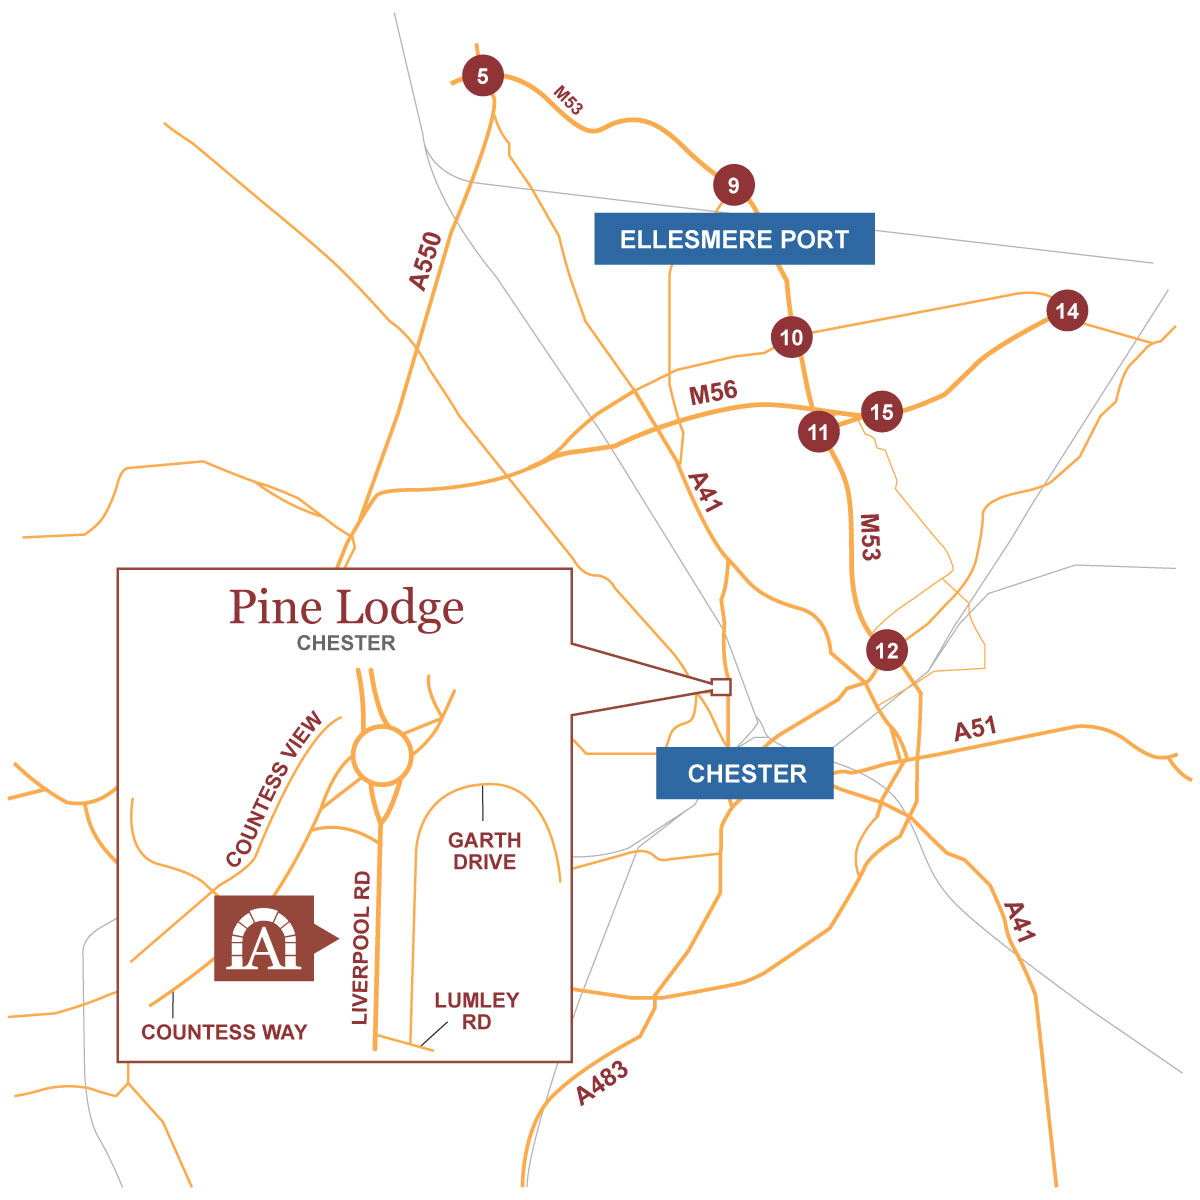 Pine Lodge location map